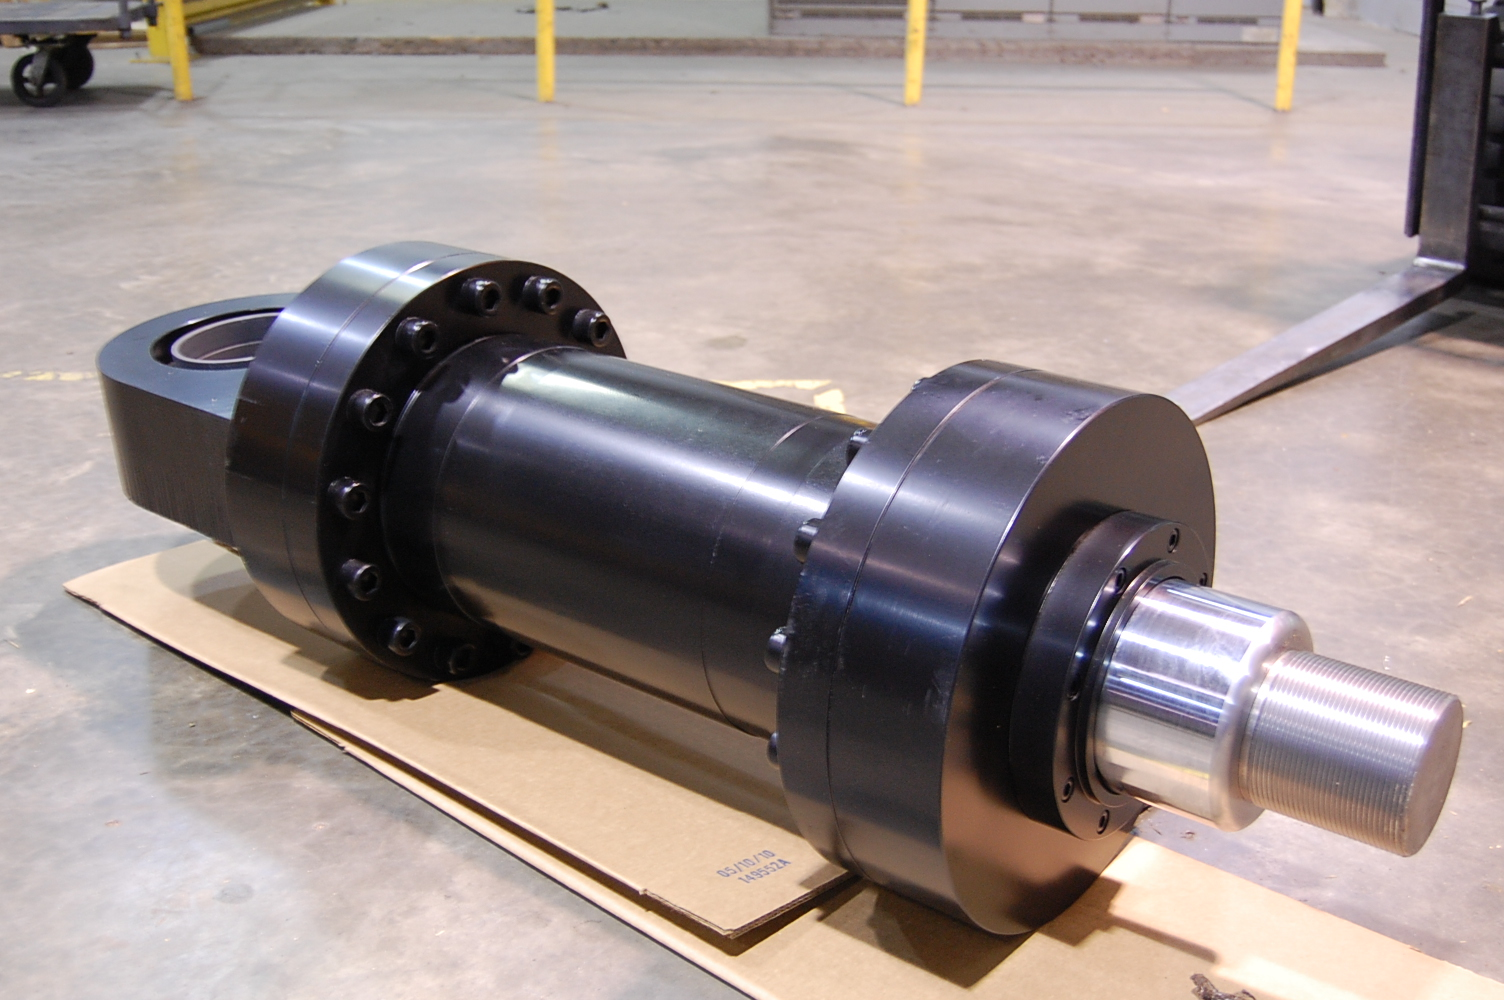 File:Mill style cylinder,hydraulic cylinders.JPG - Wikimedia Commons